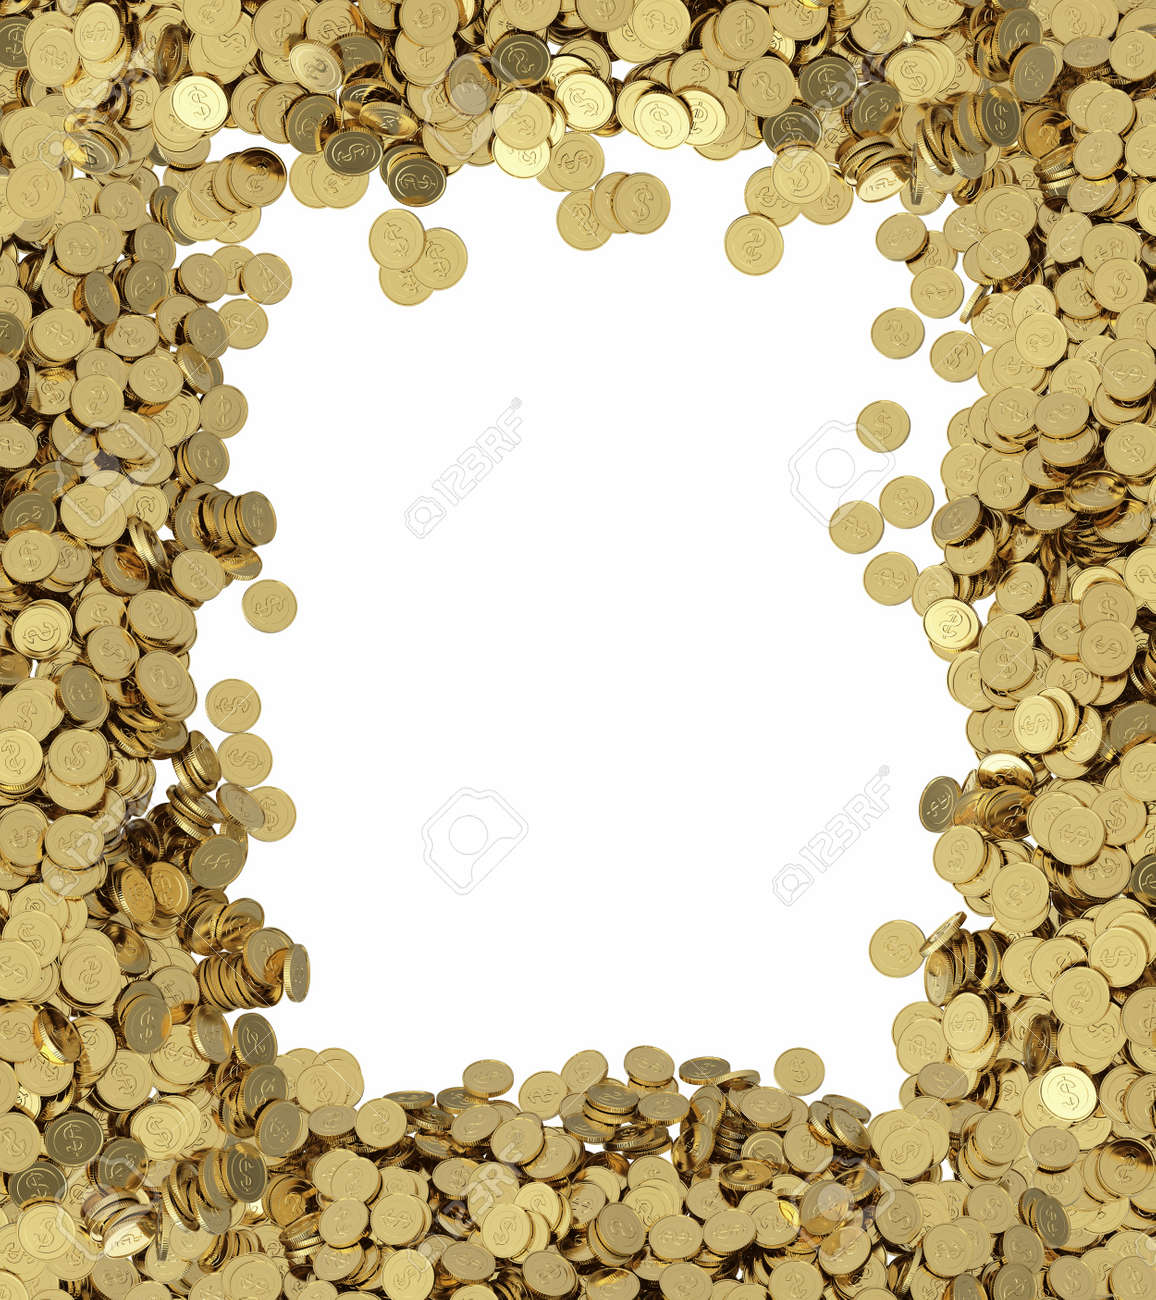 golden coins background with place for text - 19611258